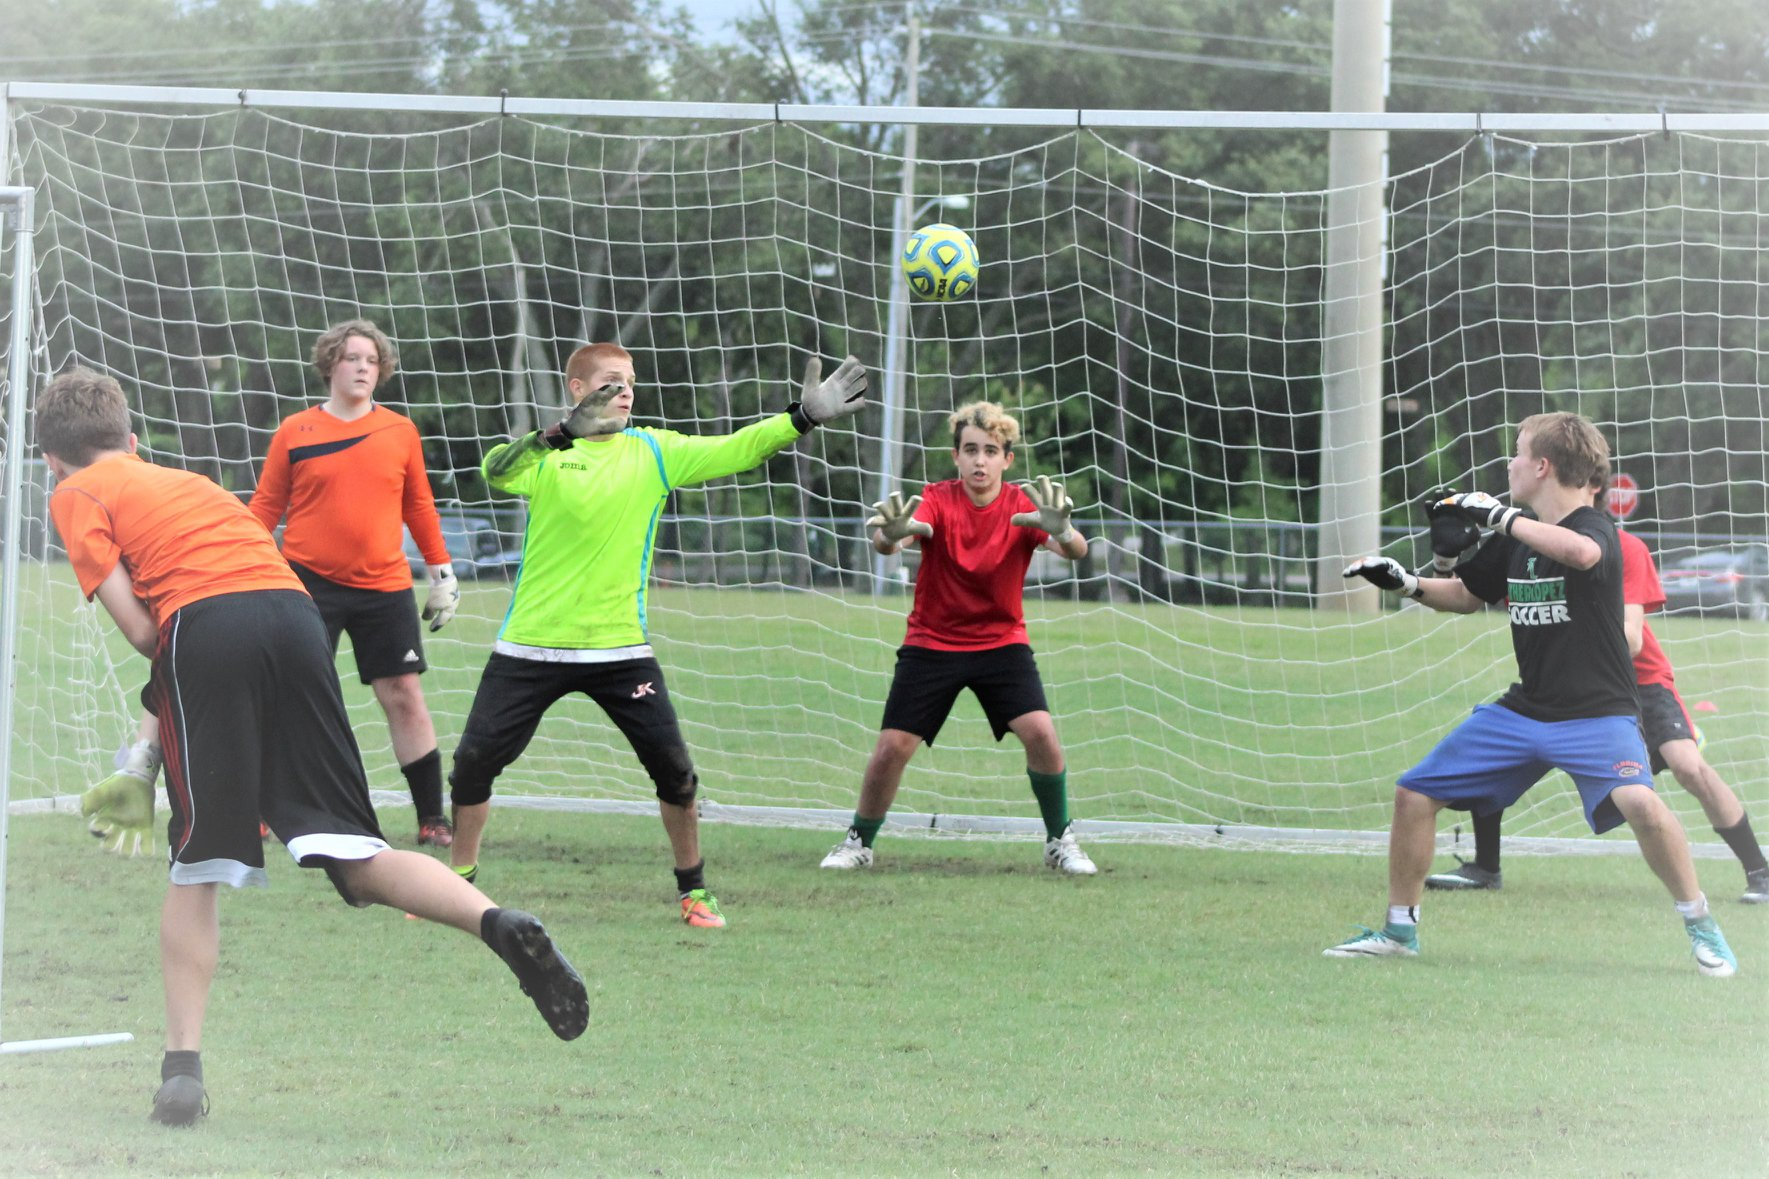 Camps for goalkeepers